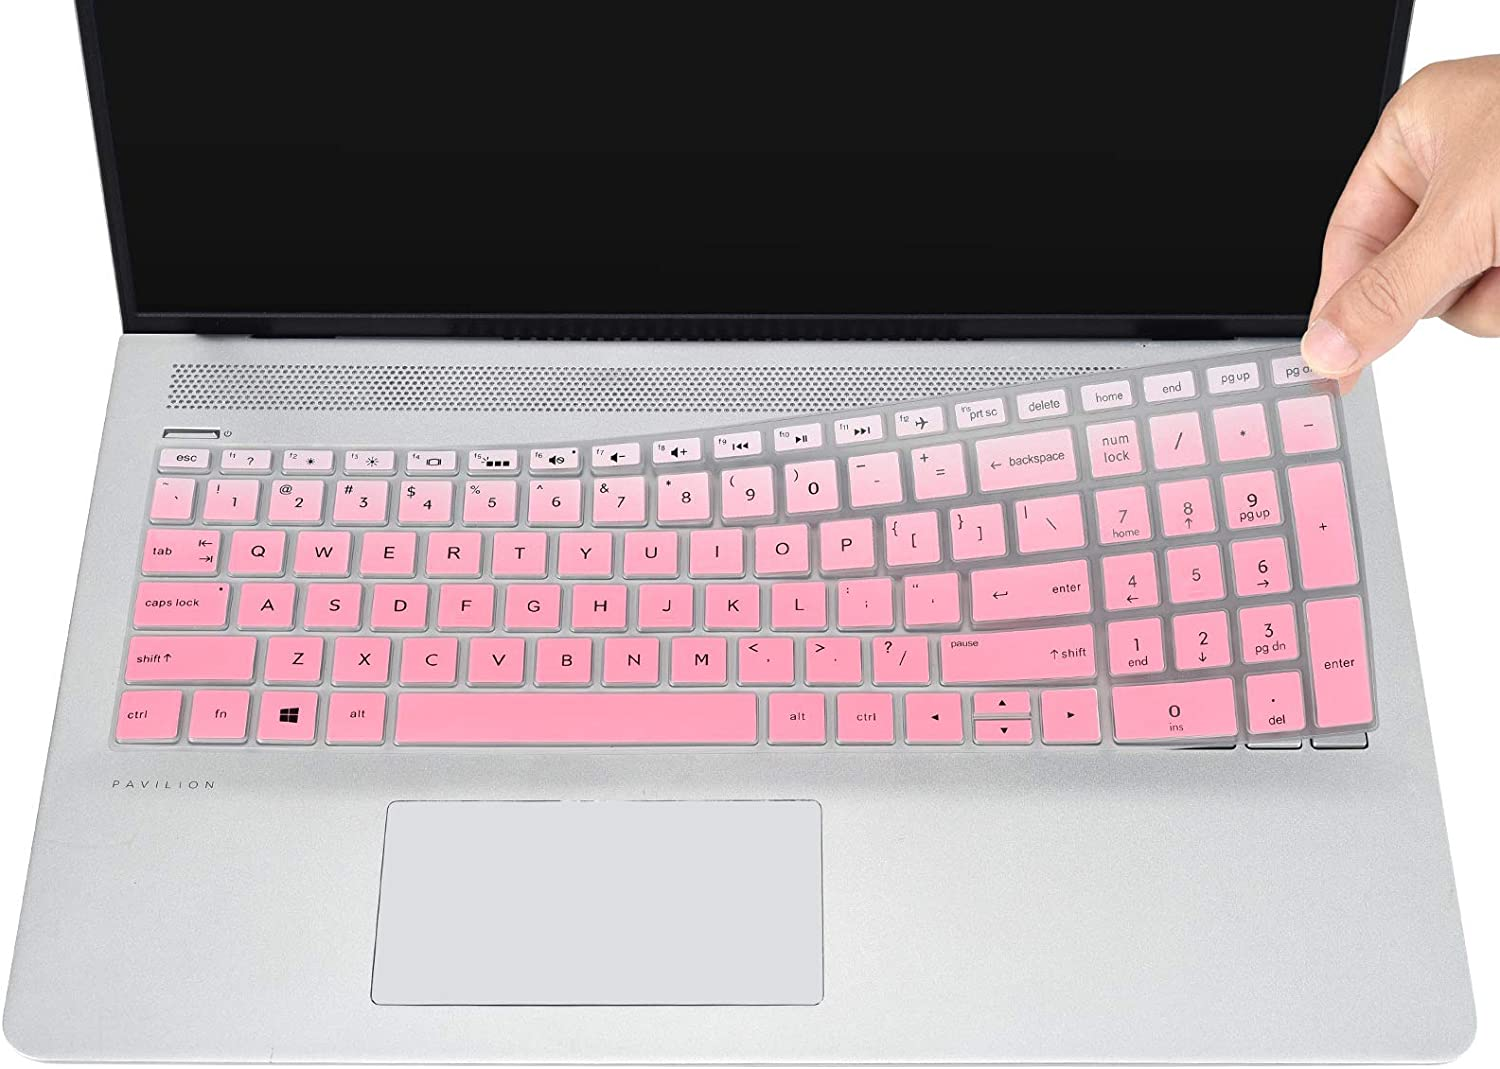 Keyboard Cover for HP Envy x360 15.6